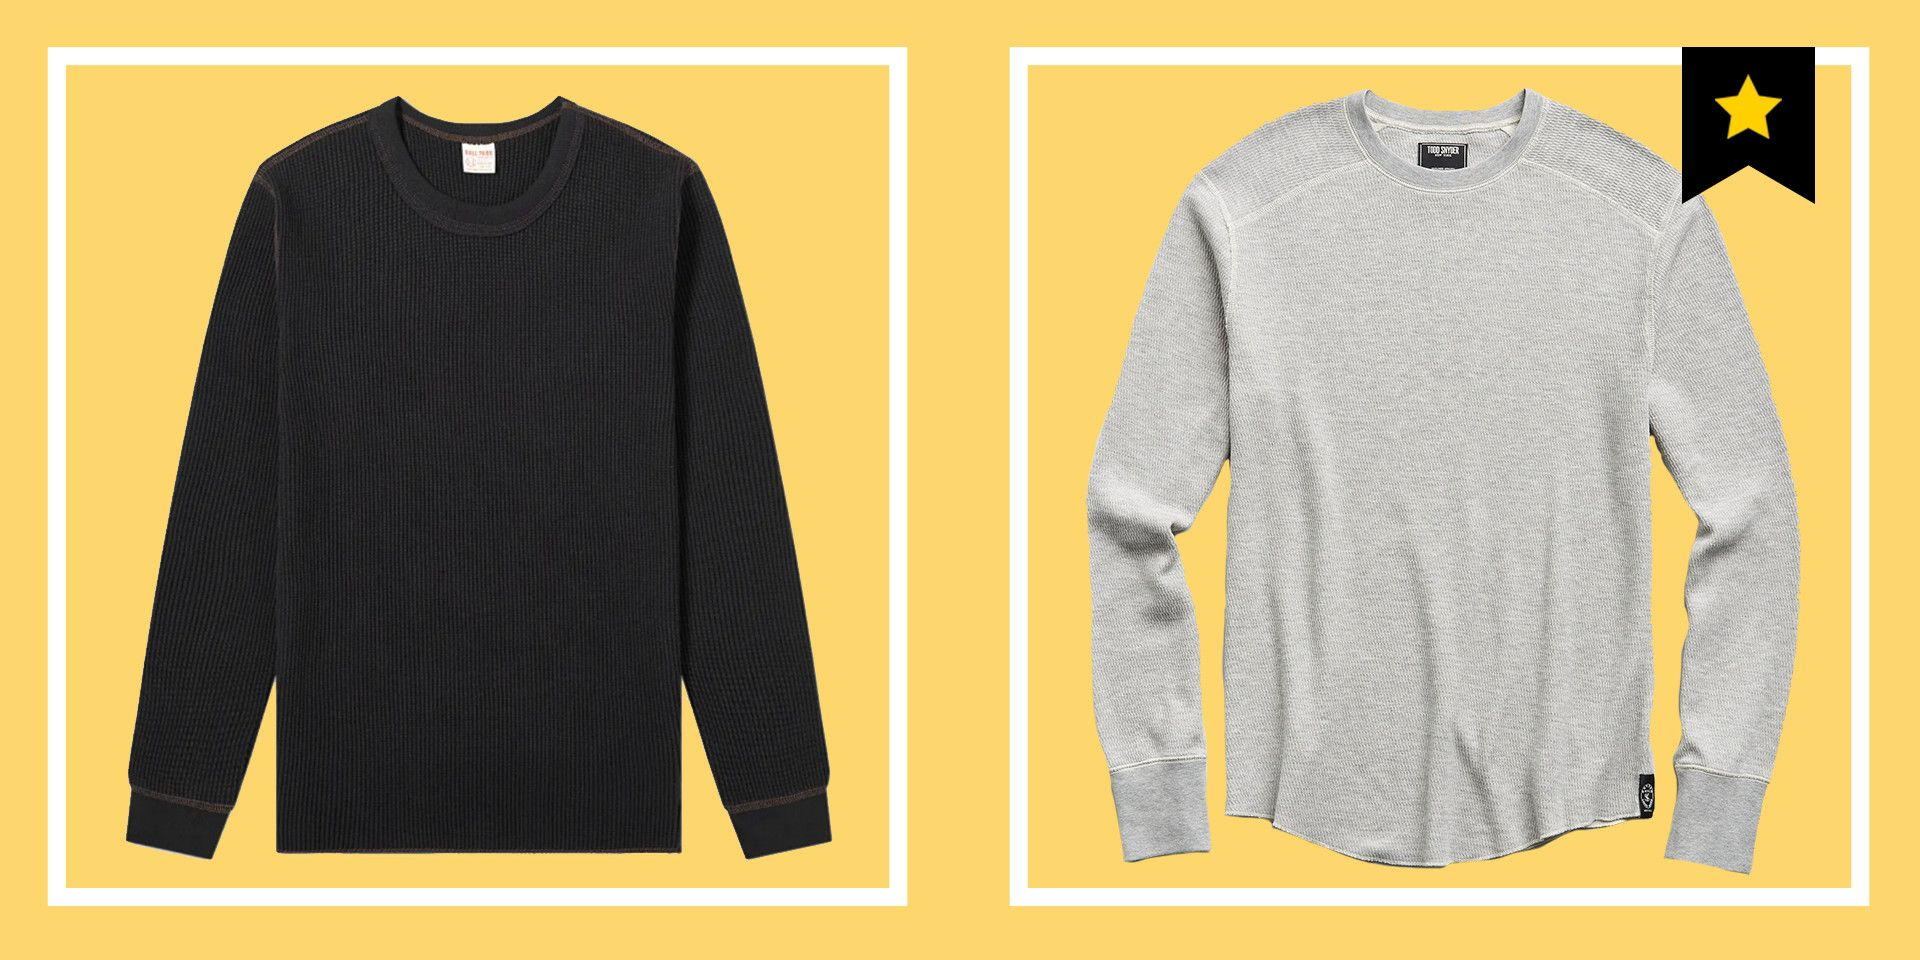 Thermal Shirts Are Your Transitional Weather Style Solution